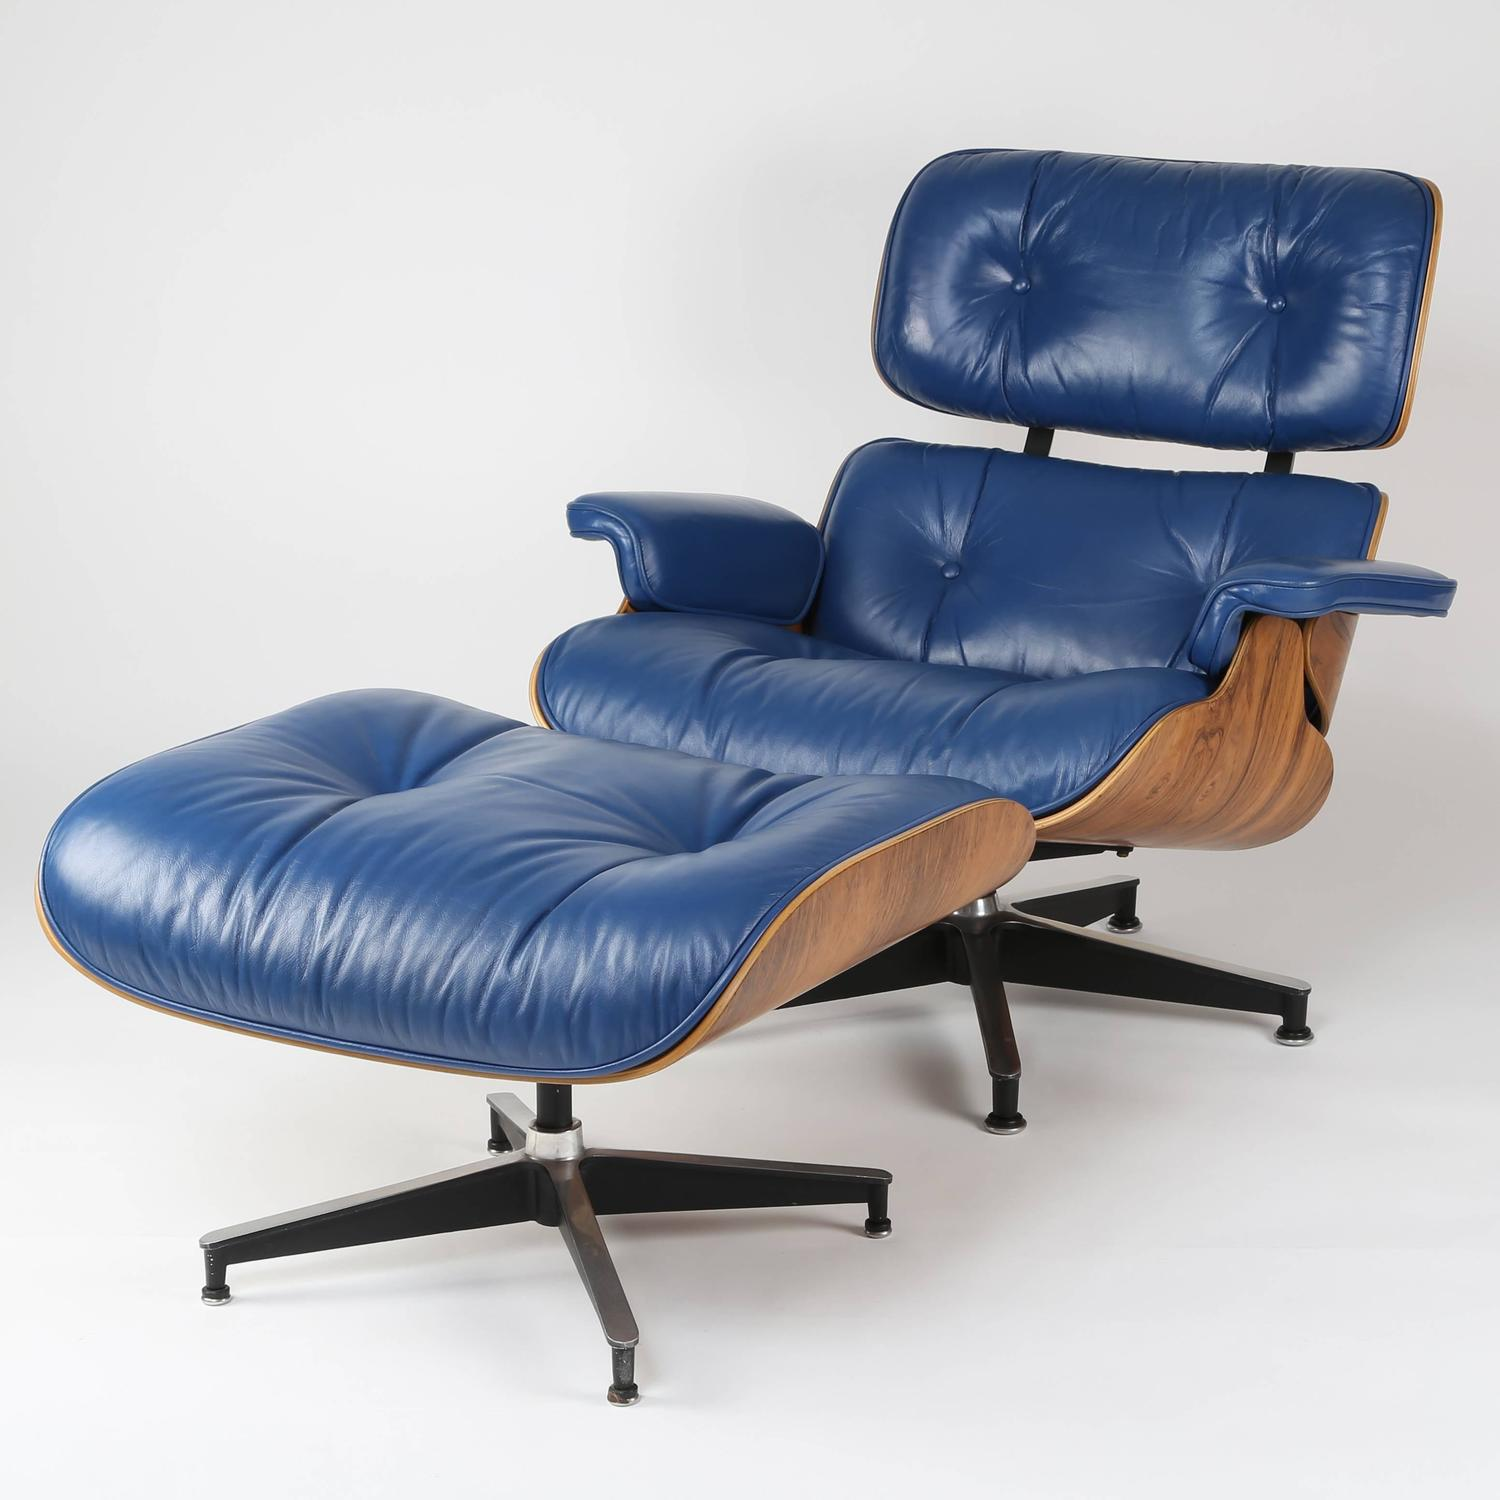 Vintage 670 671 Eames Rosewood Lounge Chair and Ottoman in Blue Leather at 1s